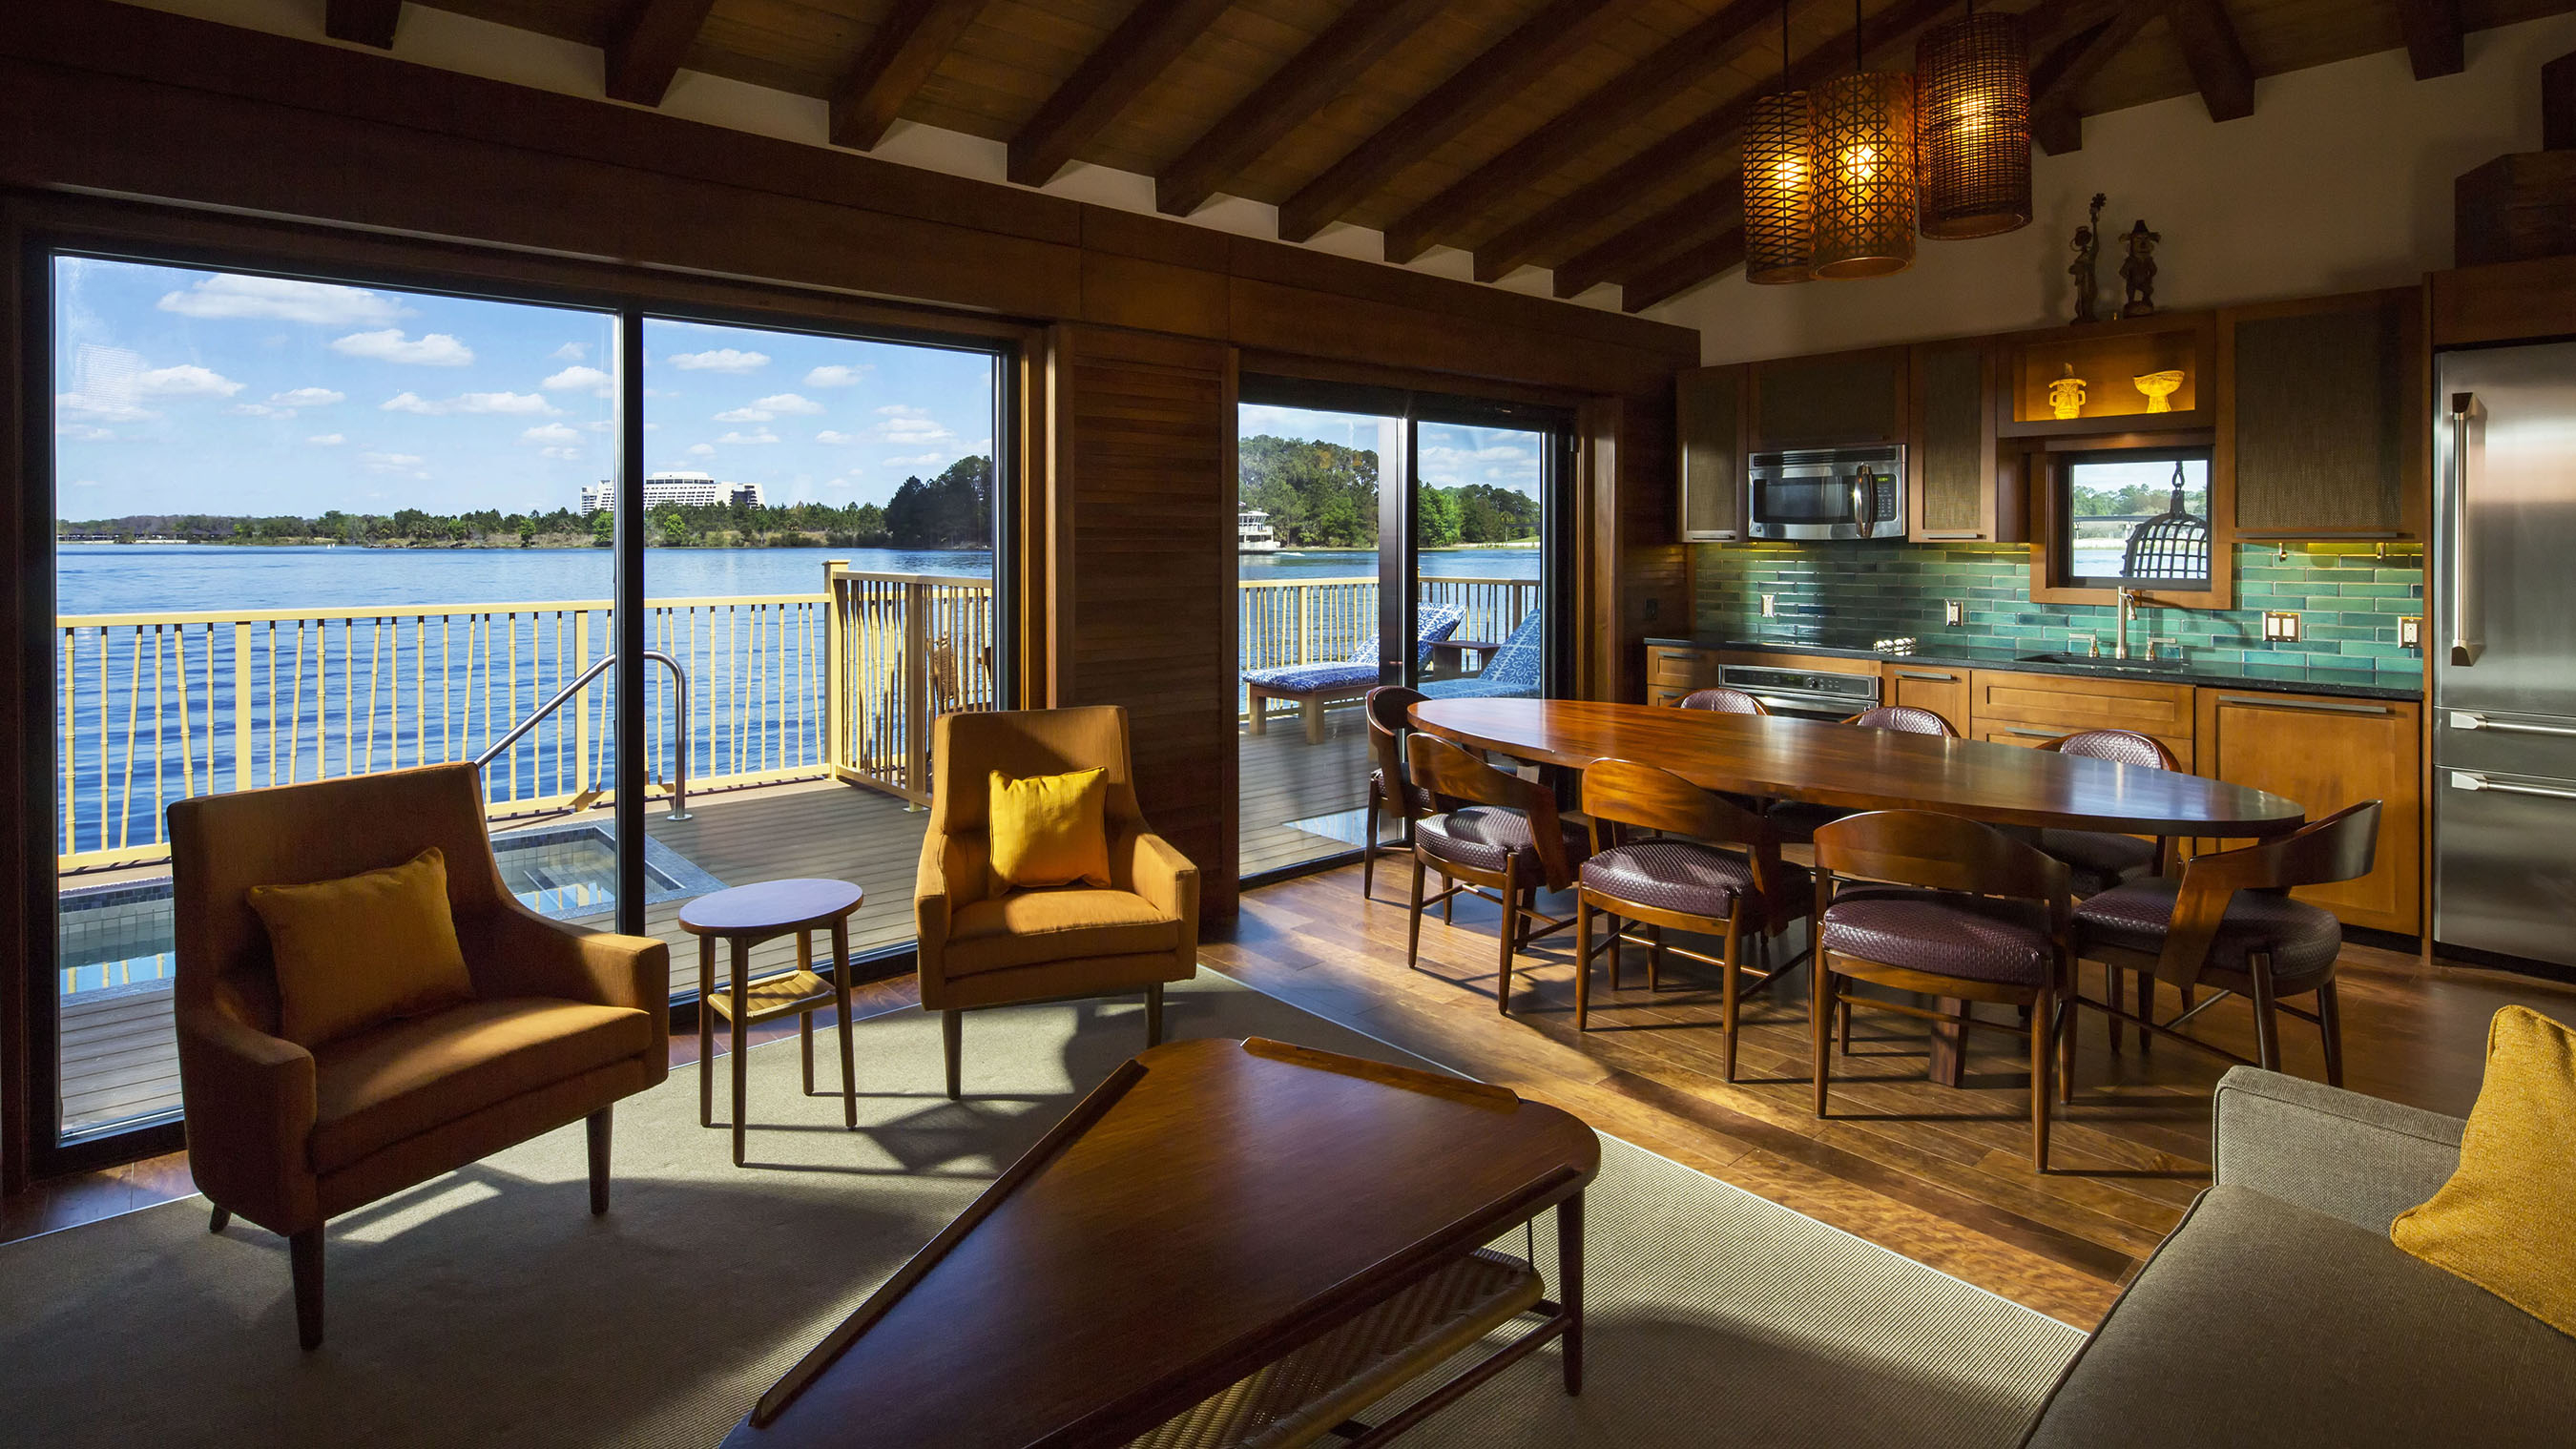 Fabulous Disney's Polynesian Villas & Bungalows Fact Sheet | Walt Disney pertaining to Disney Polynesian Resort Bungalows